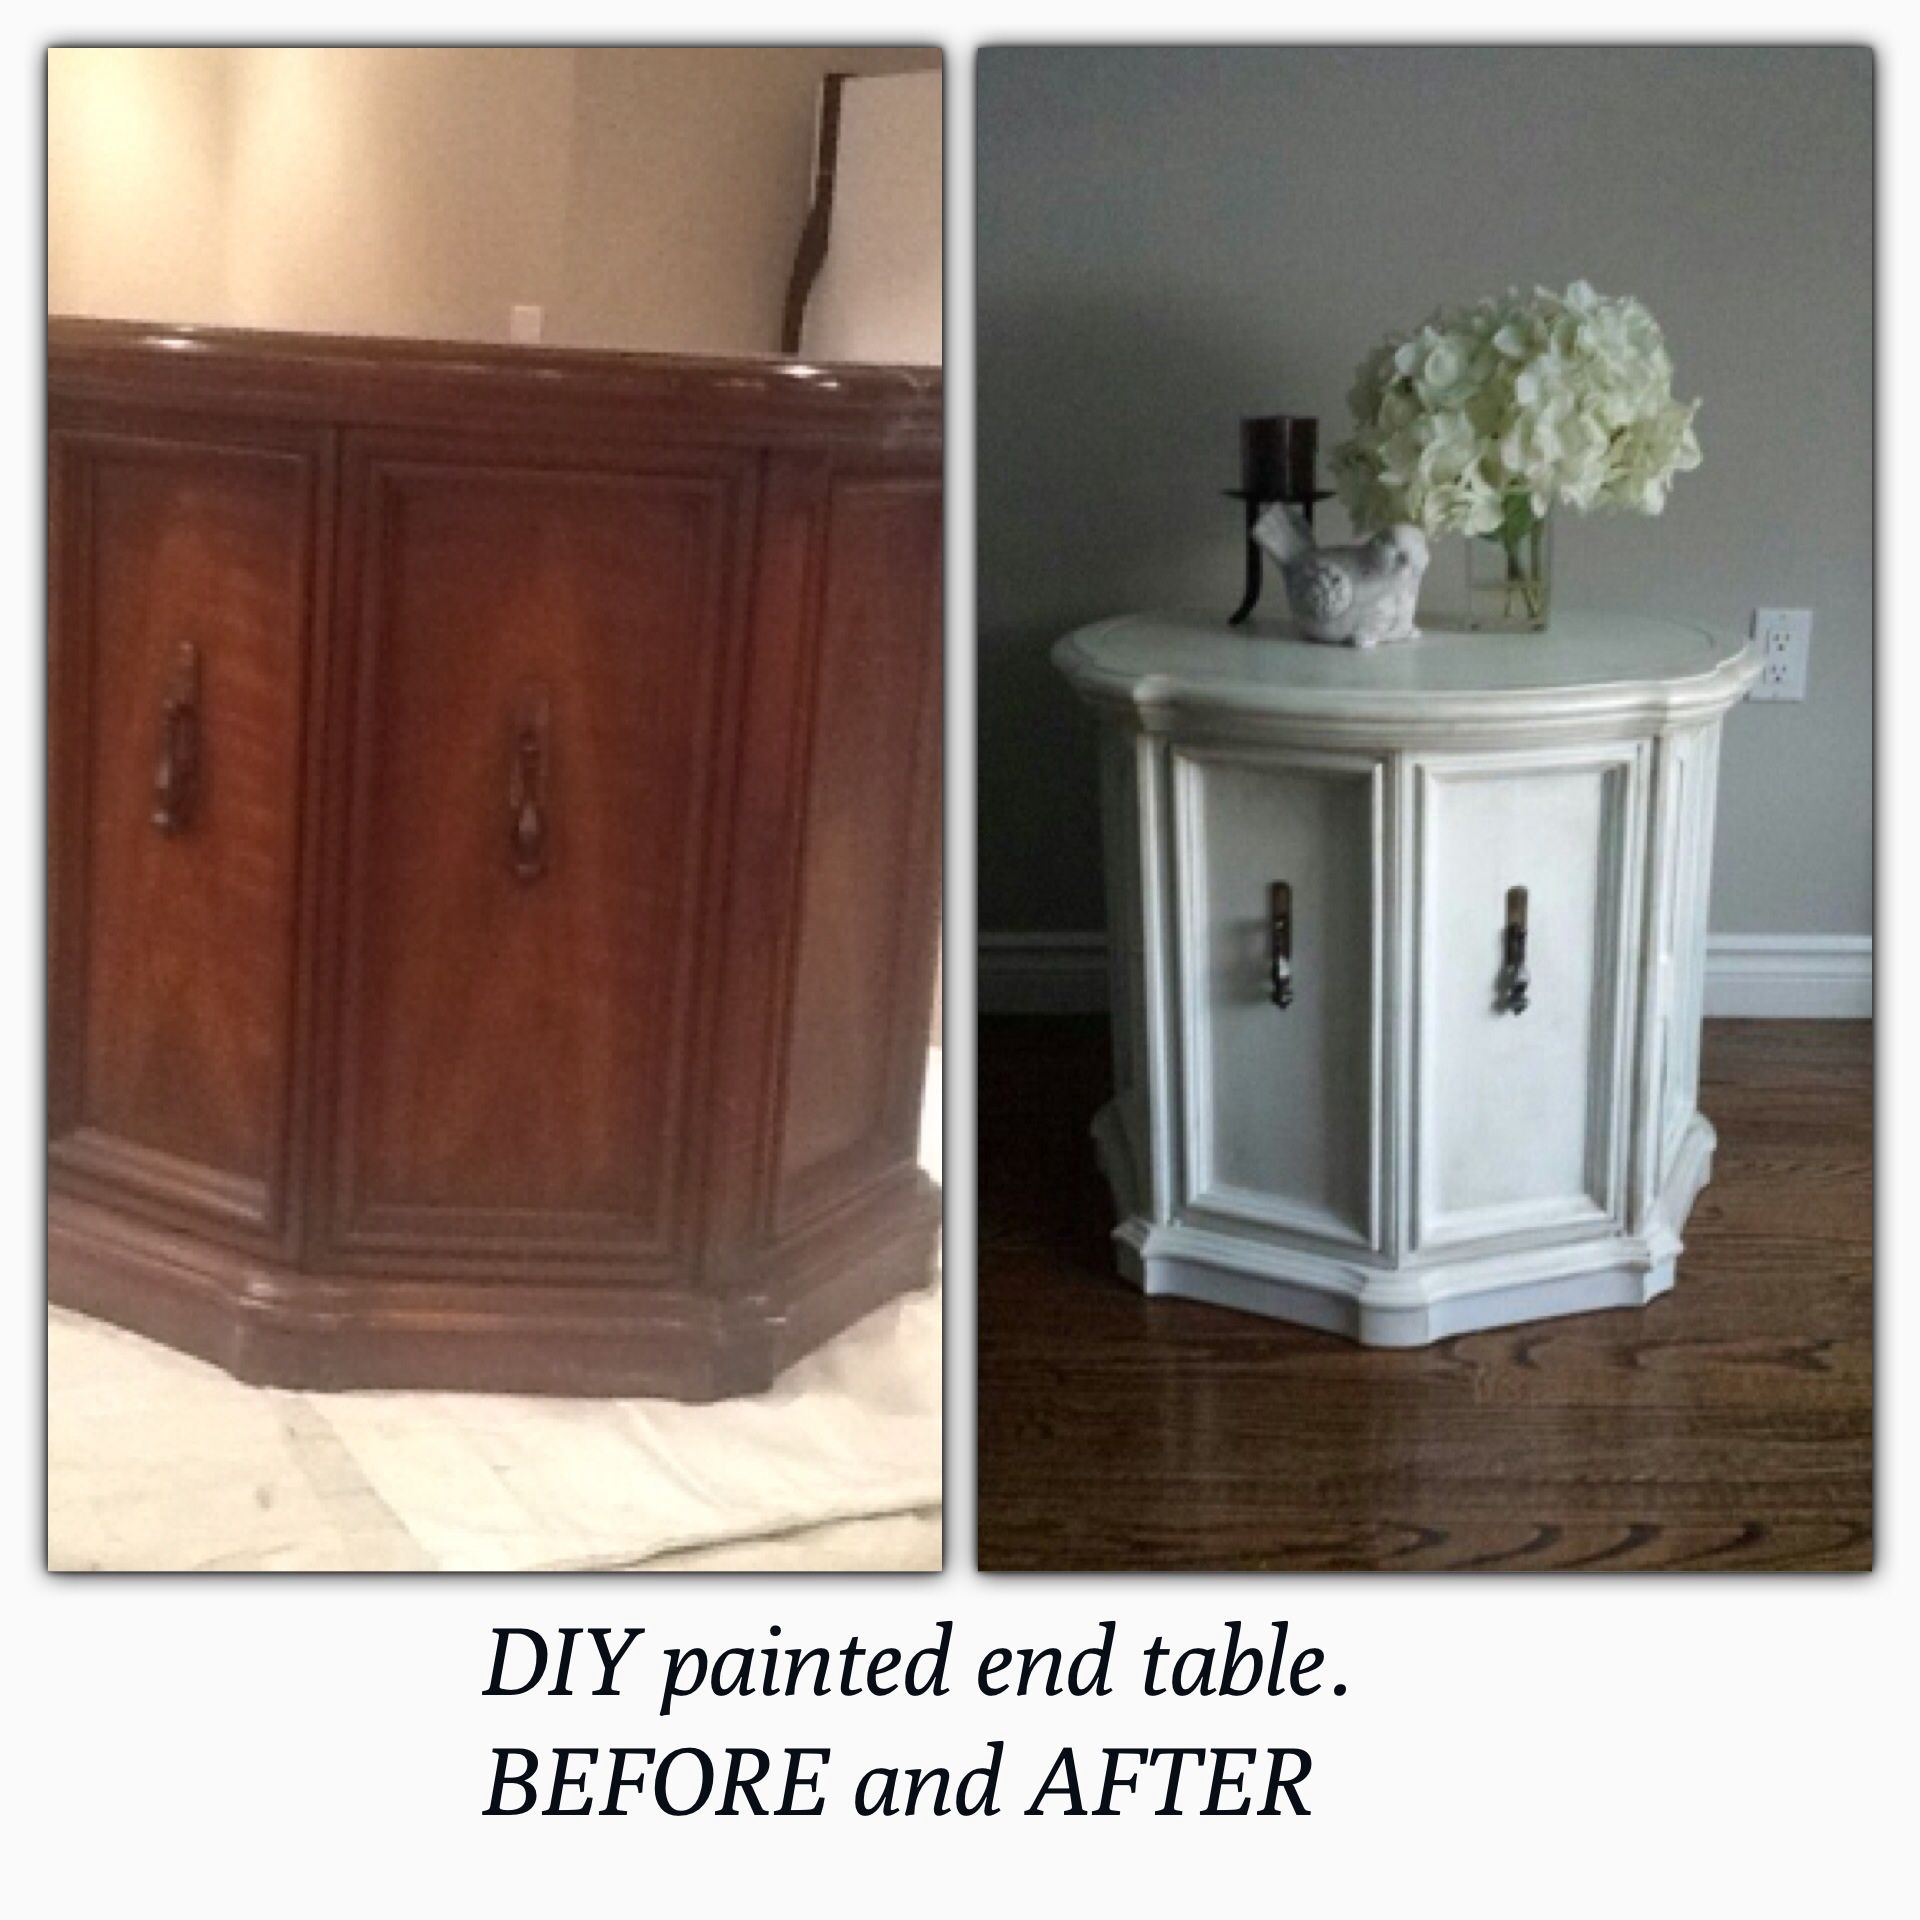 Round Cabinet Style End Table Paint With A Diy Chalk Paint Furniture Makeover Furniture Makeover Diy Furniture Diy